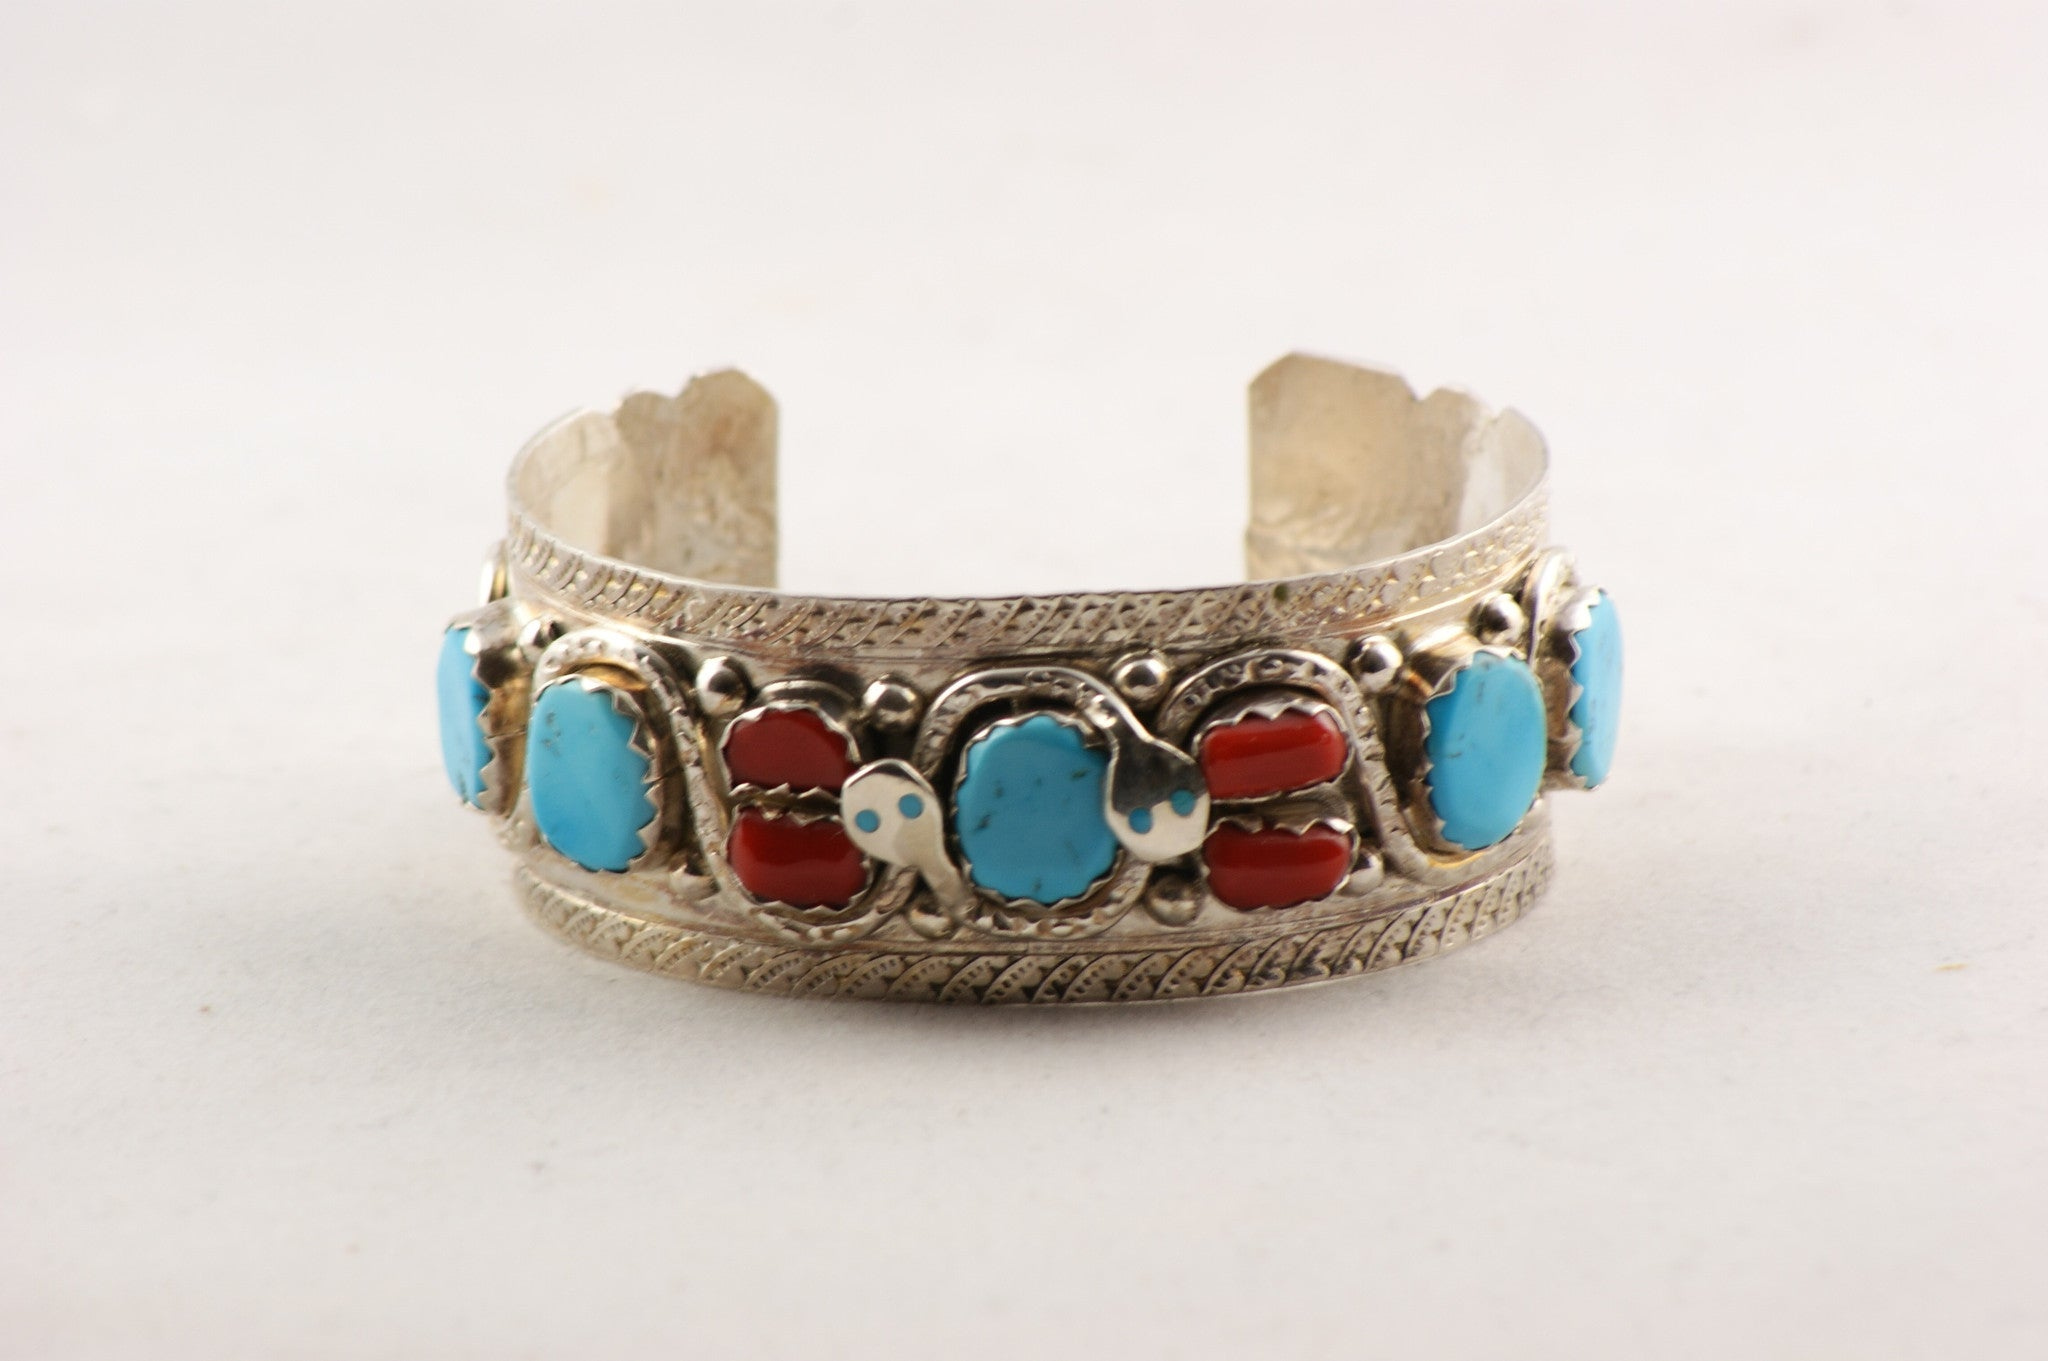 Zuni Turquoise And Red Coral Cuff Bracelet By Effie Calavaza